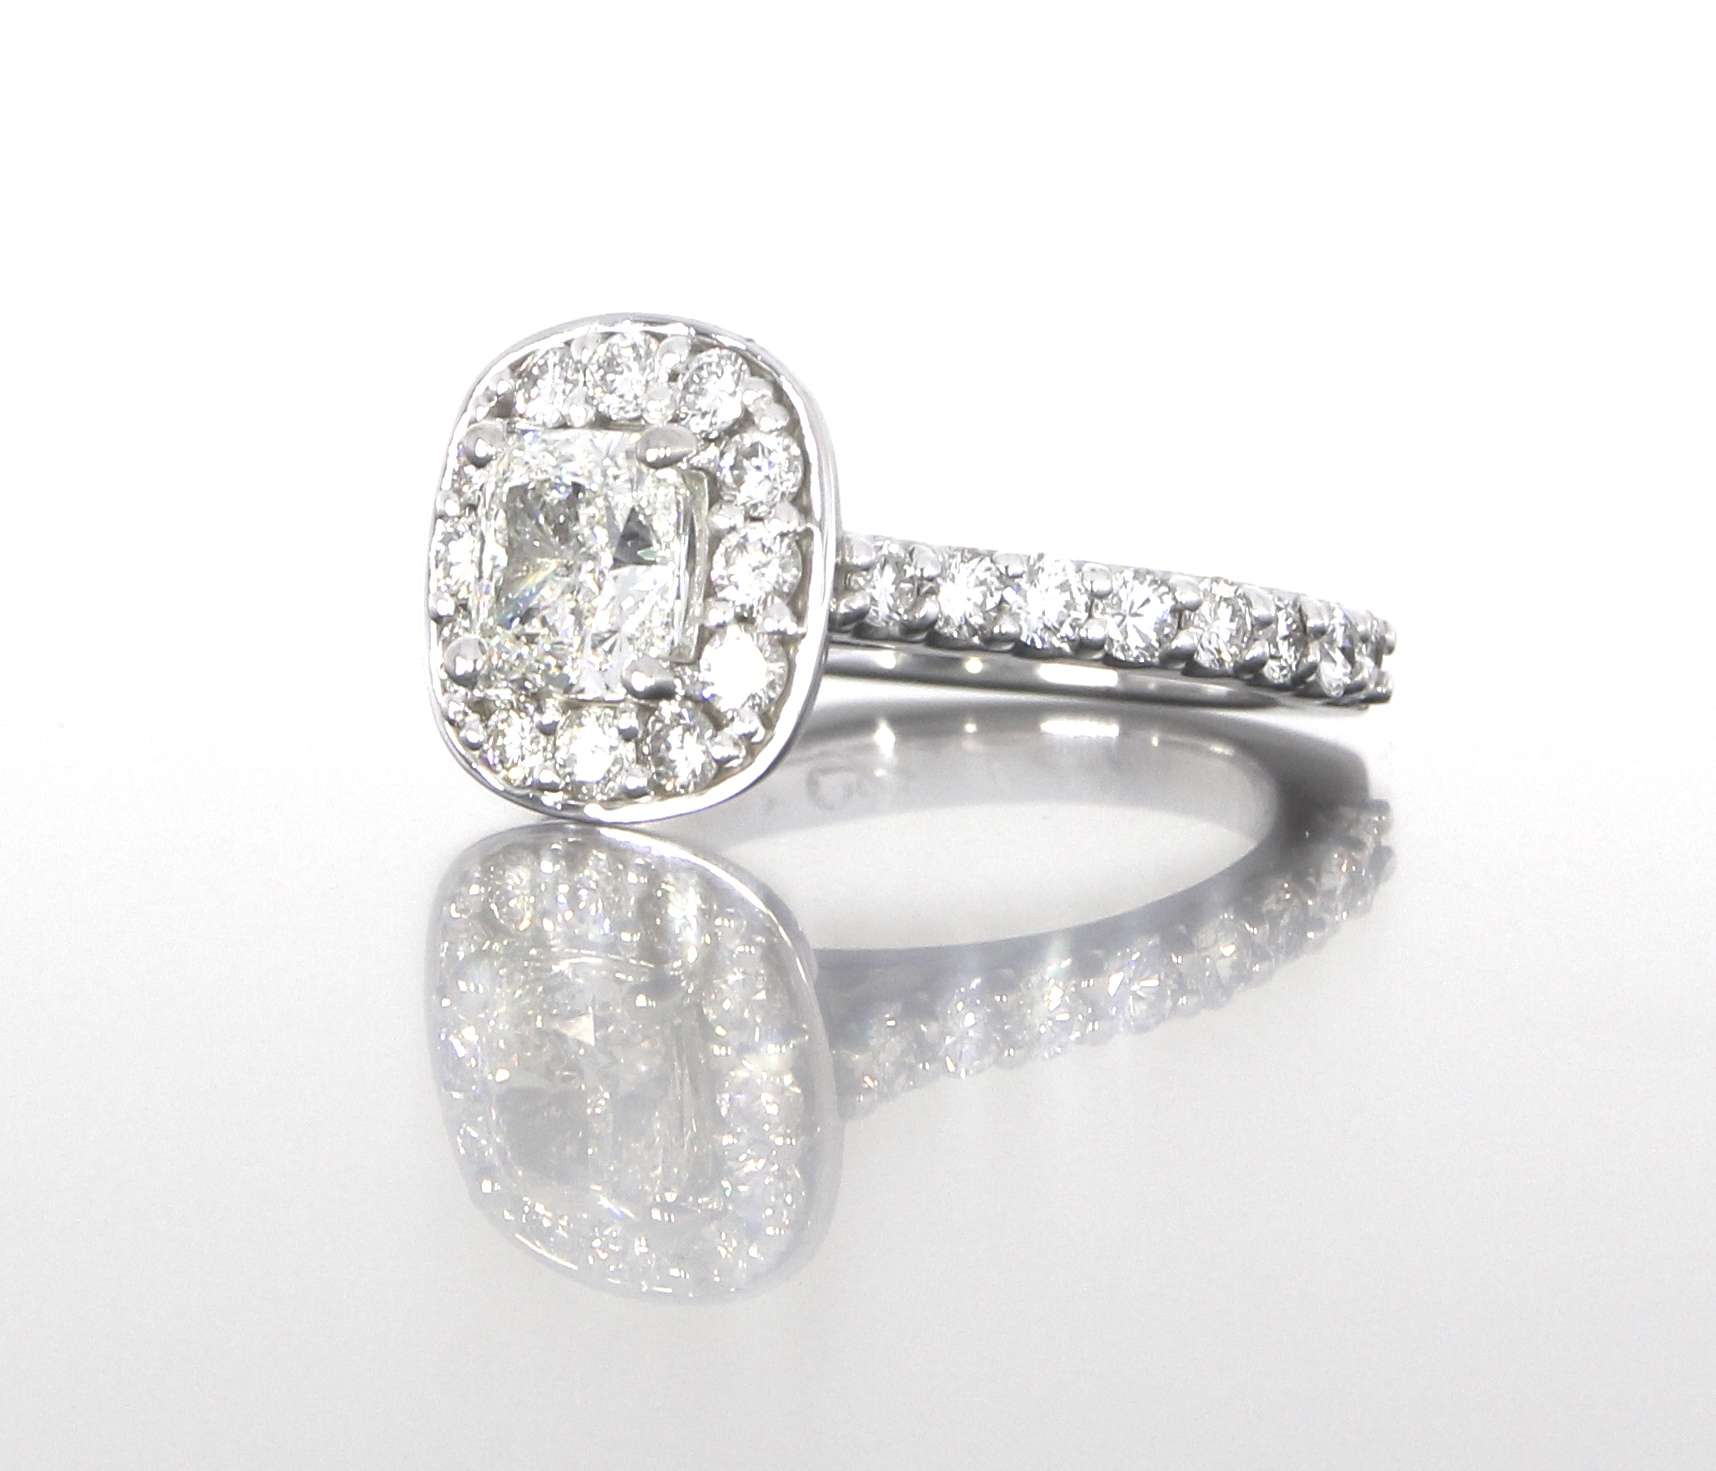 side-view-unique-cushion-cut-diamond-halo-engagement-ring-craft-revival-jewelry-store-grand-rapids.jpg